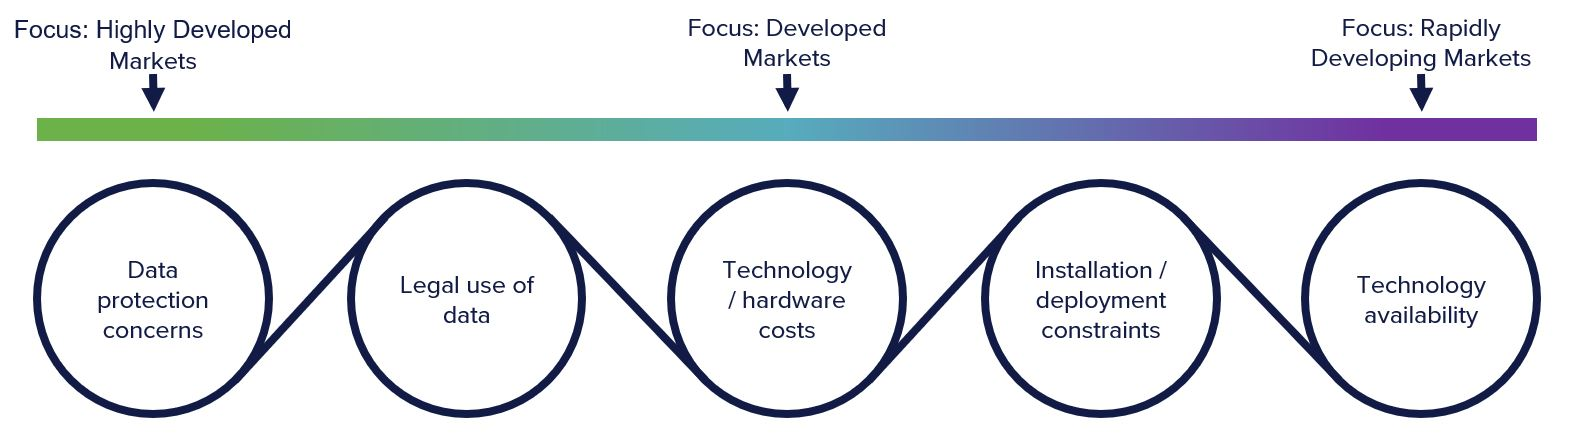 Five challenges or barriers to the deployment of connected vehicle technology